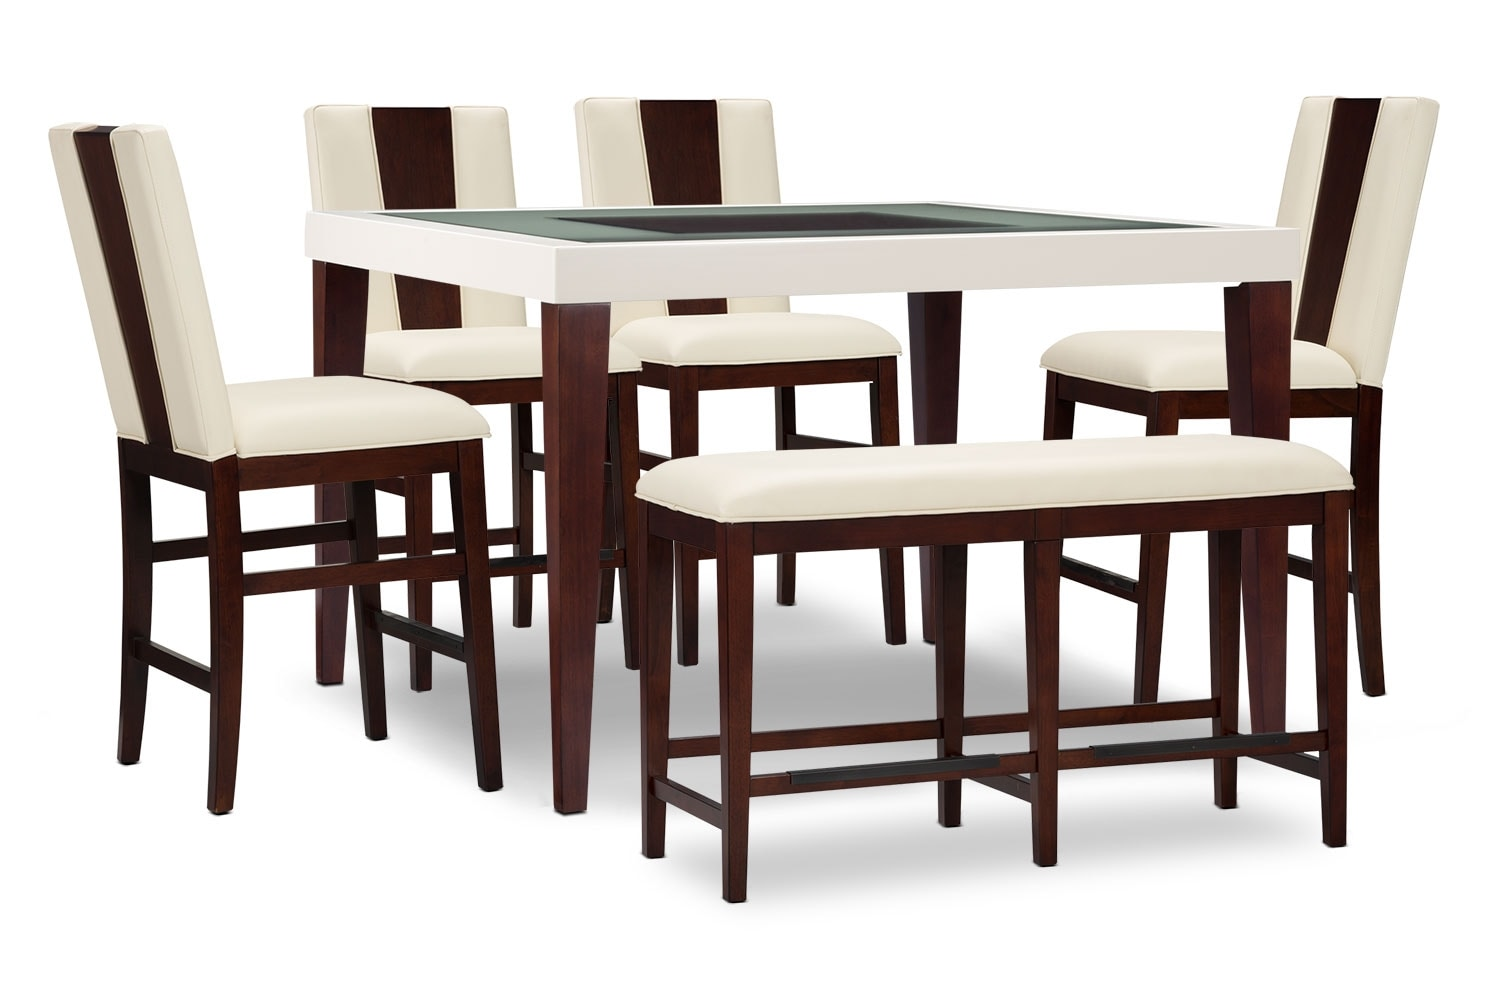 Dining Room Furniture - Zeno 6-Piece Counter-Height Dining Package with Wood Back Chair